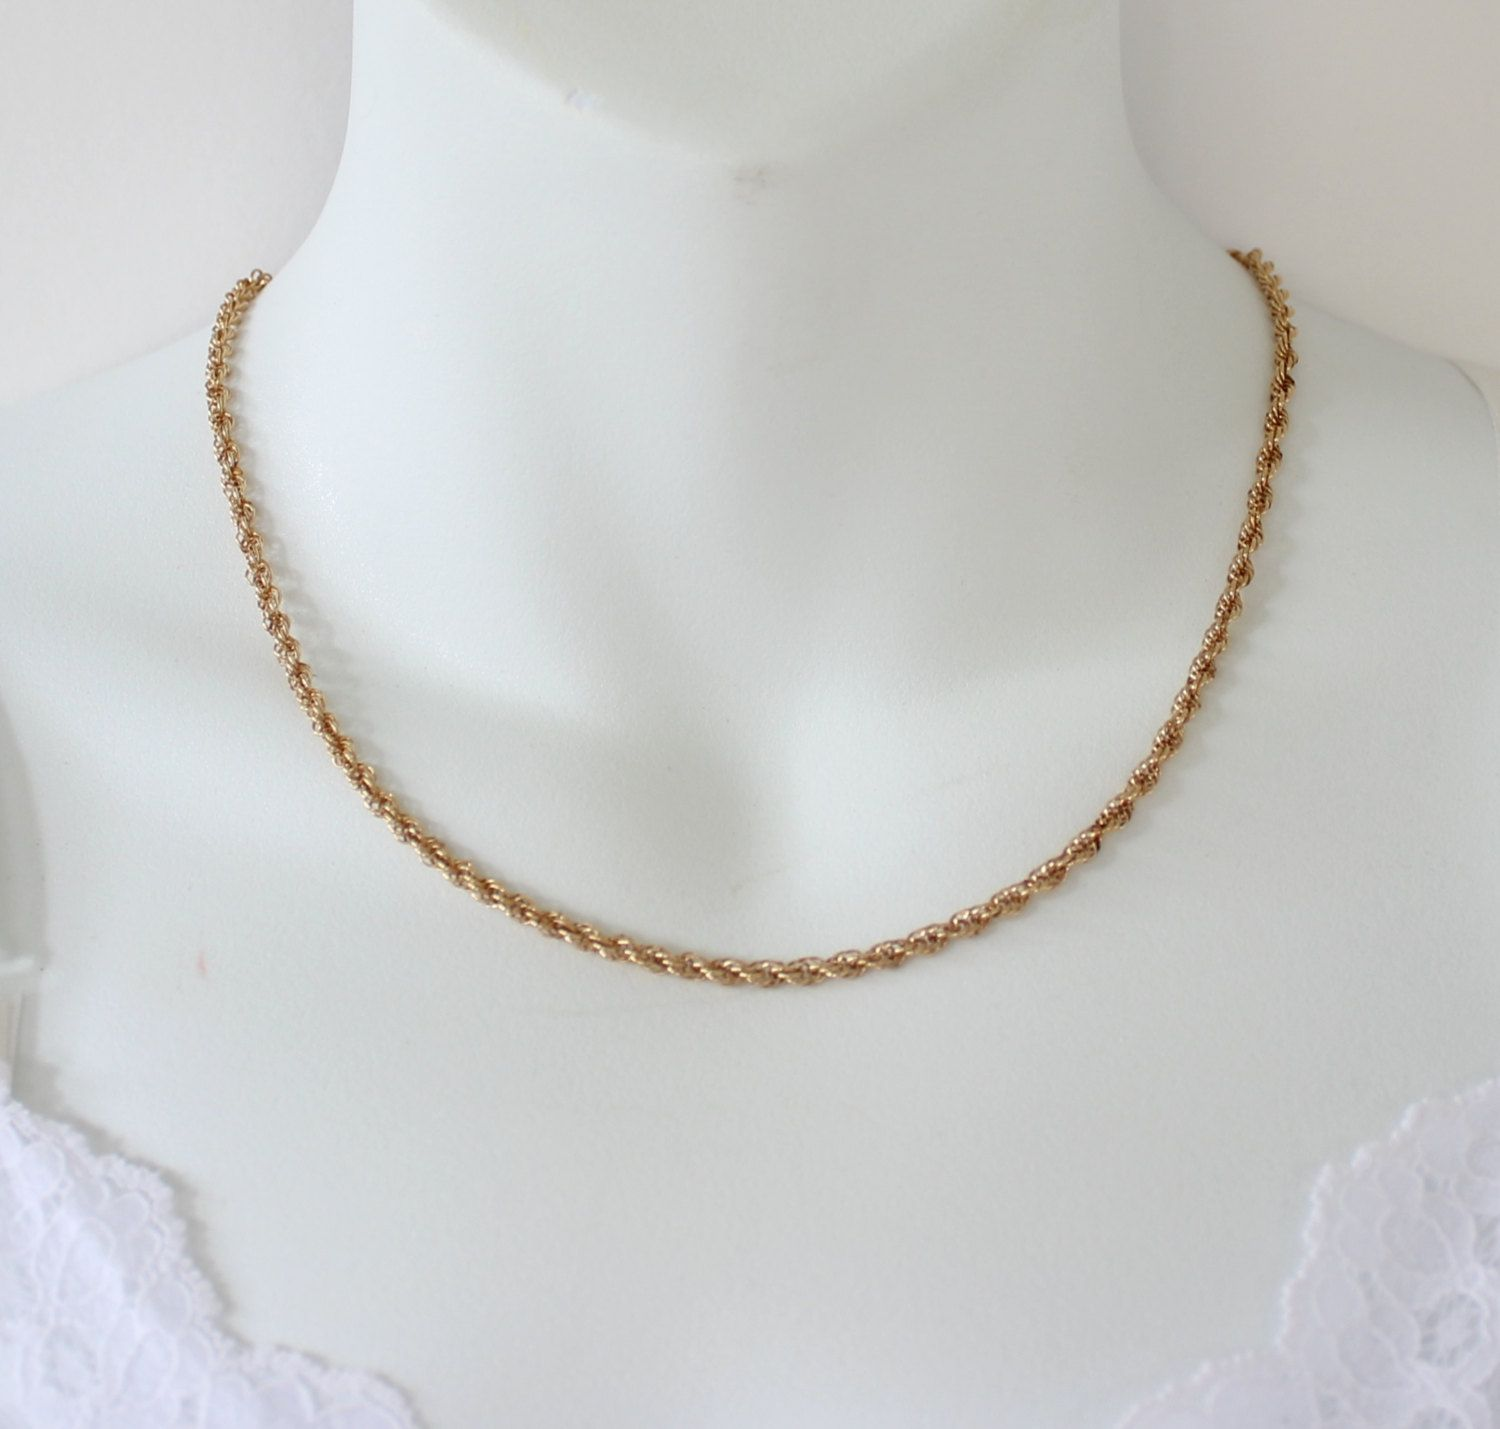 Vintage 1984 Signed Avon 14K Gold Filled 120 14KT GF Chain Princess